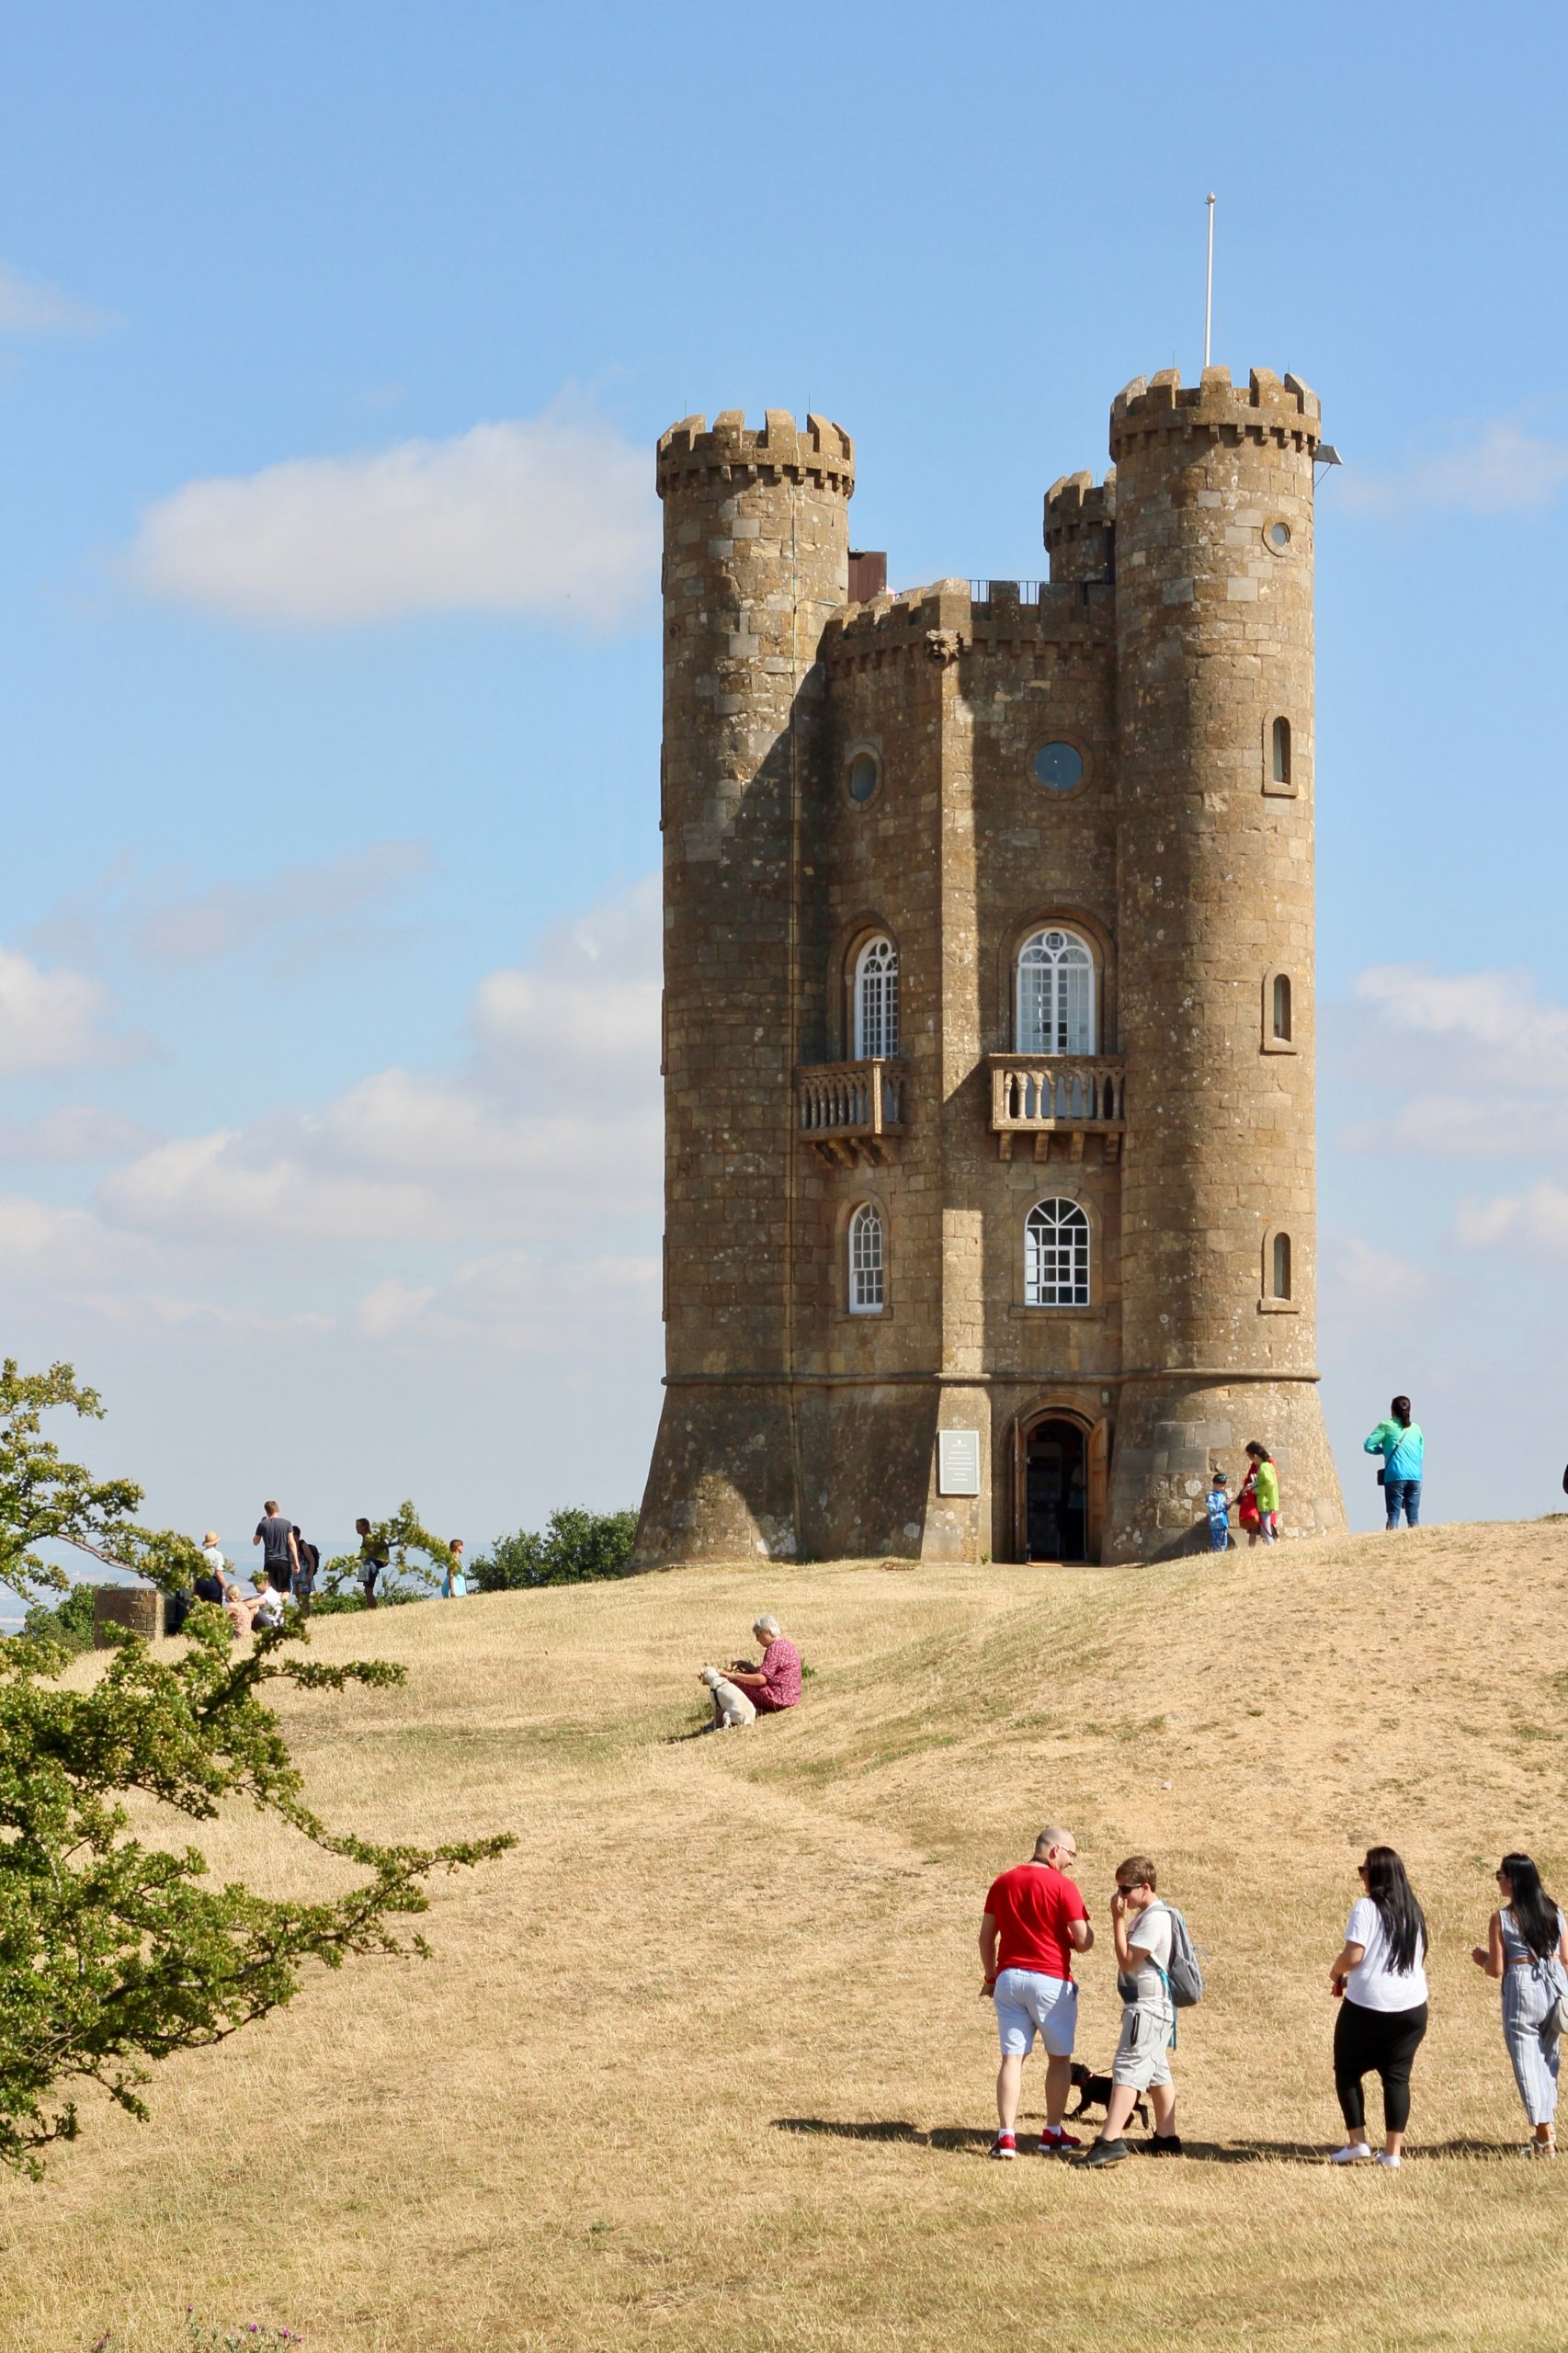 Tourists visiting Broadway Tower in the Cotswolds.